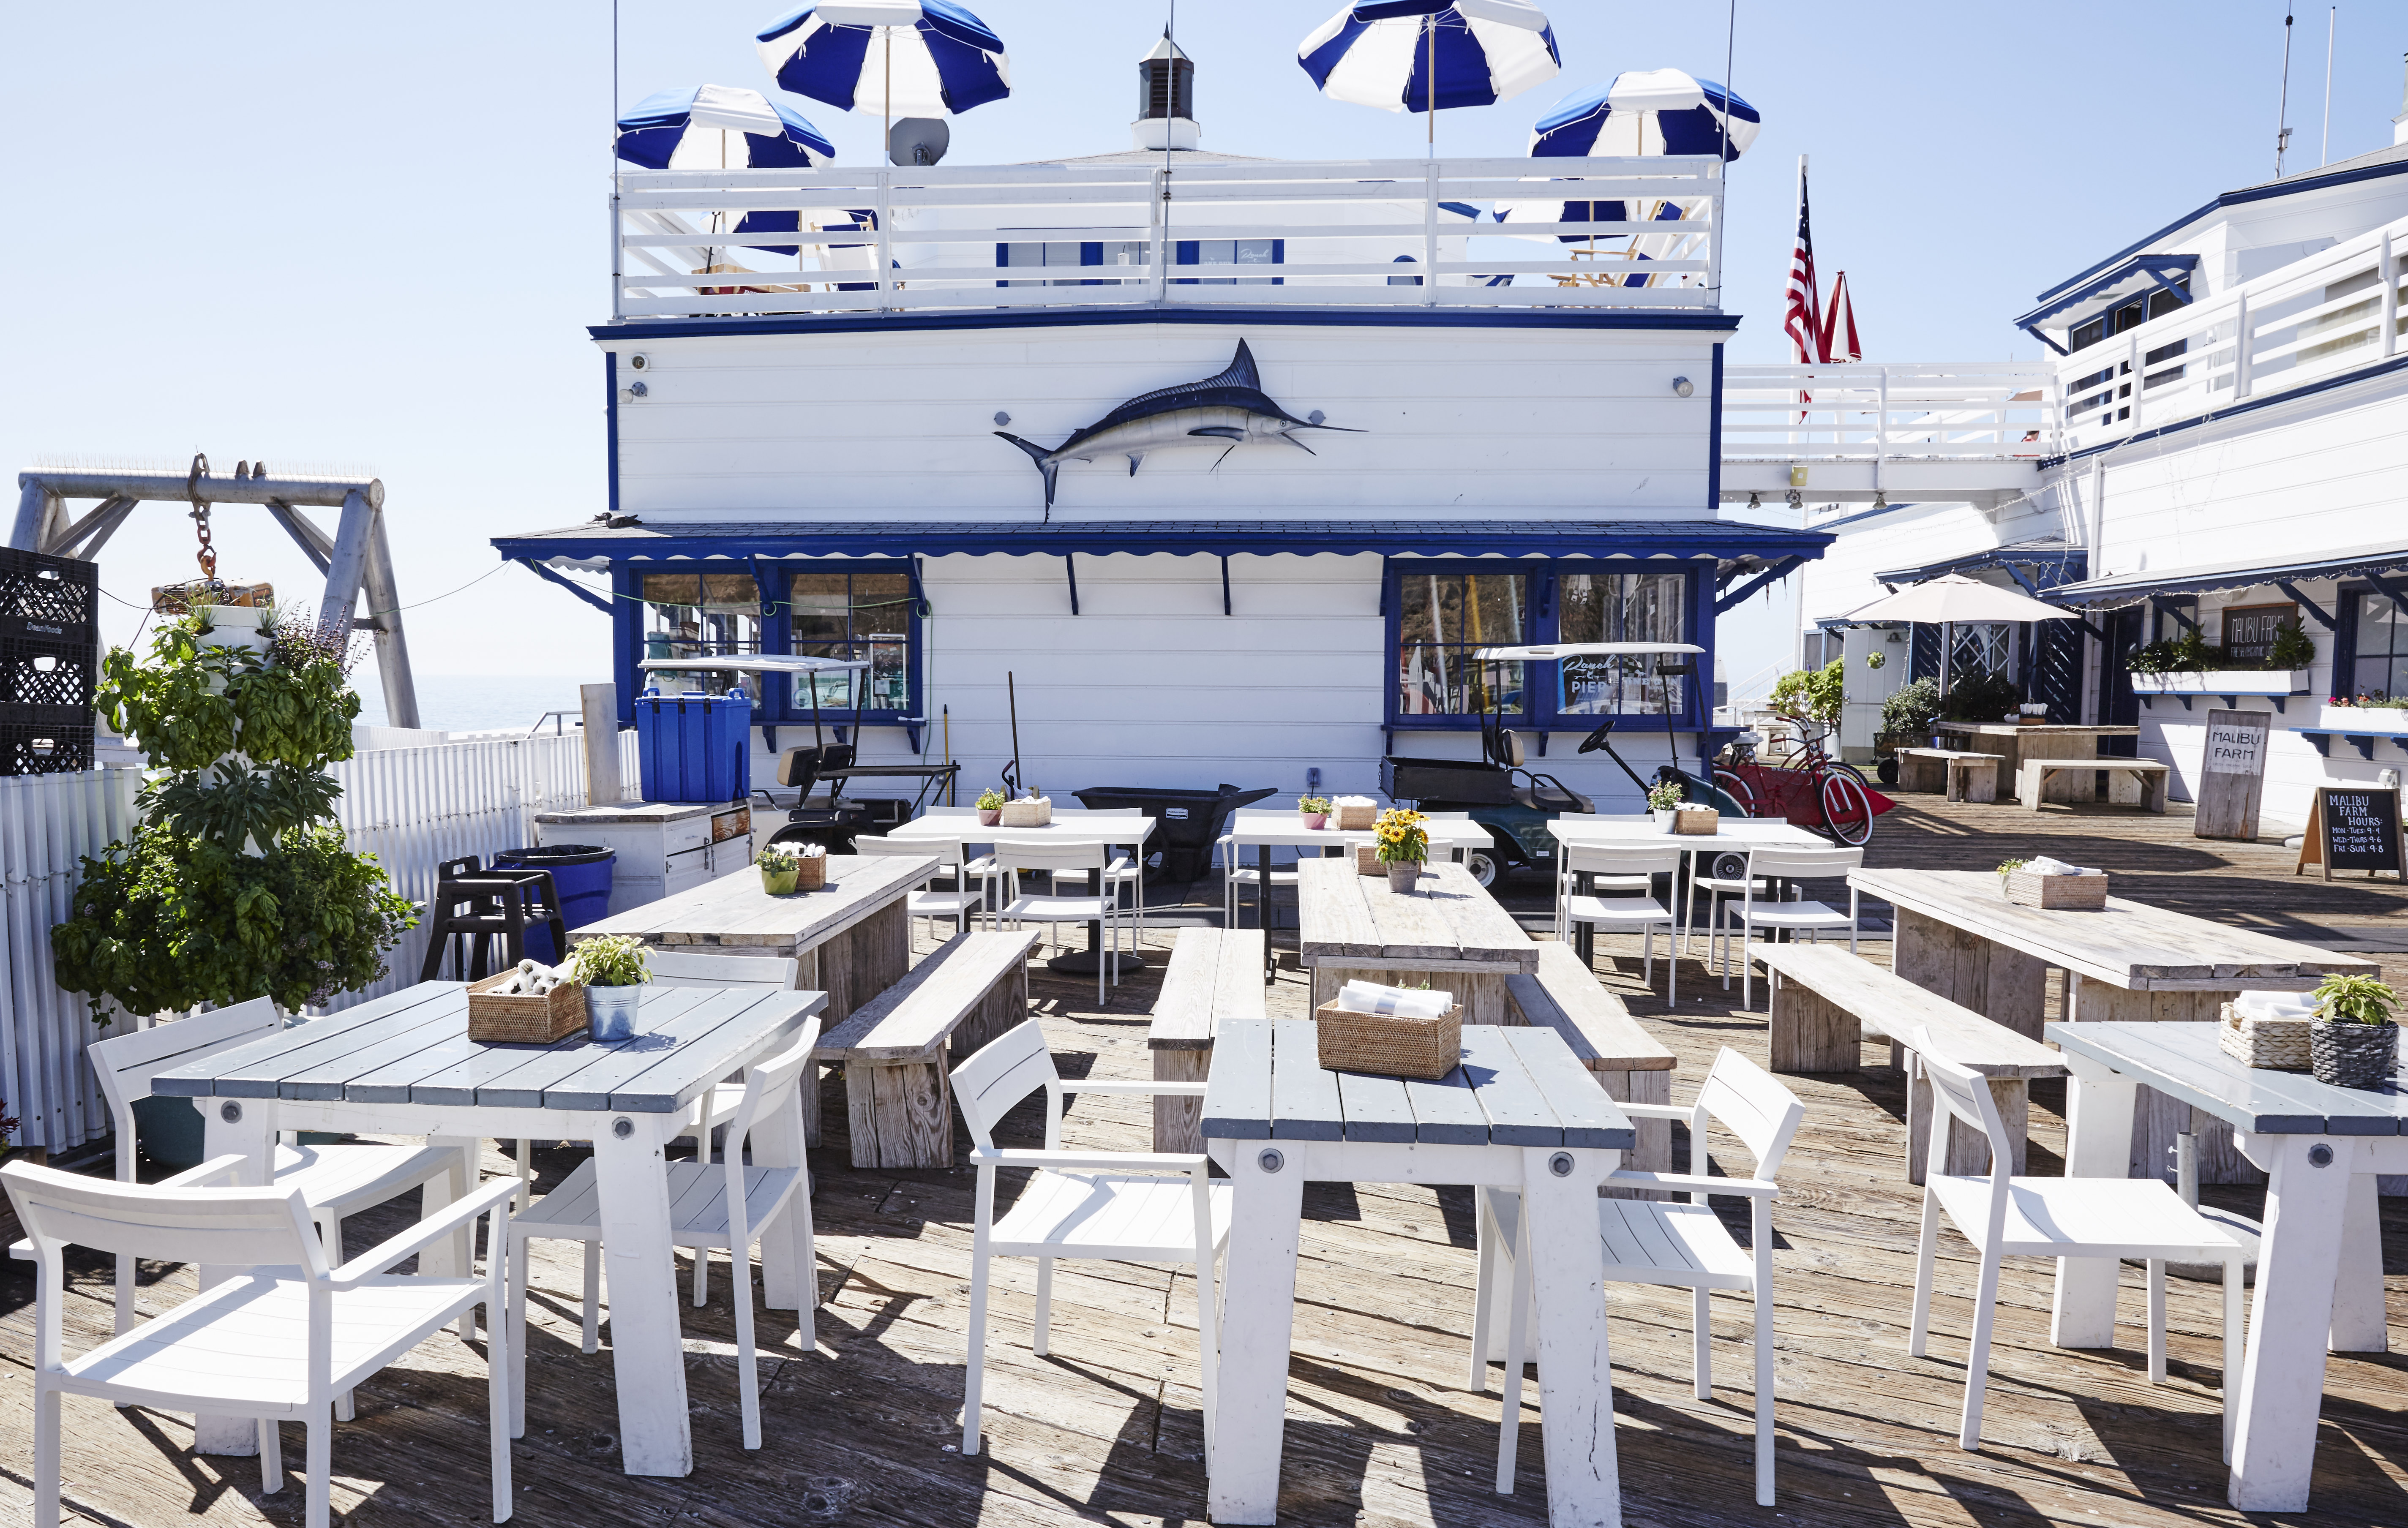 malibu pier family itinerary helene henderson malibu farm restaurant cafe surfrider beach one gun ranch kids love captain and the gypsy kid CATGK time for lunch tables and chairs